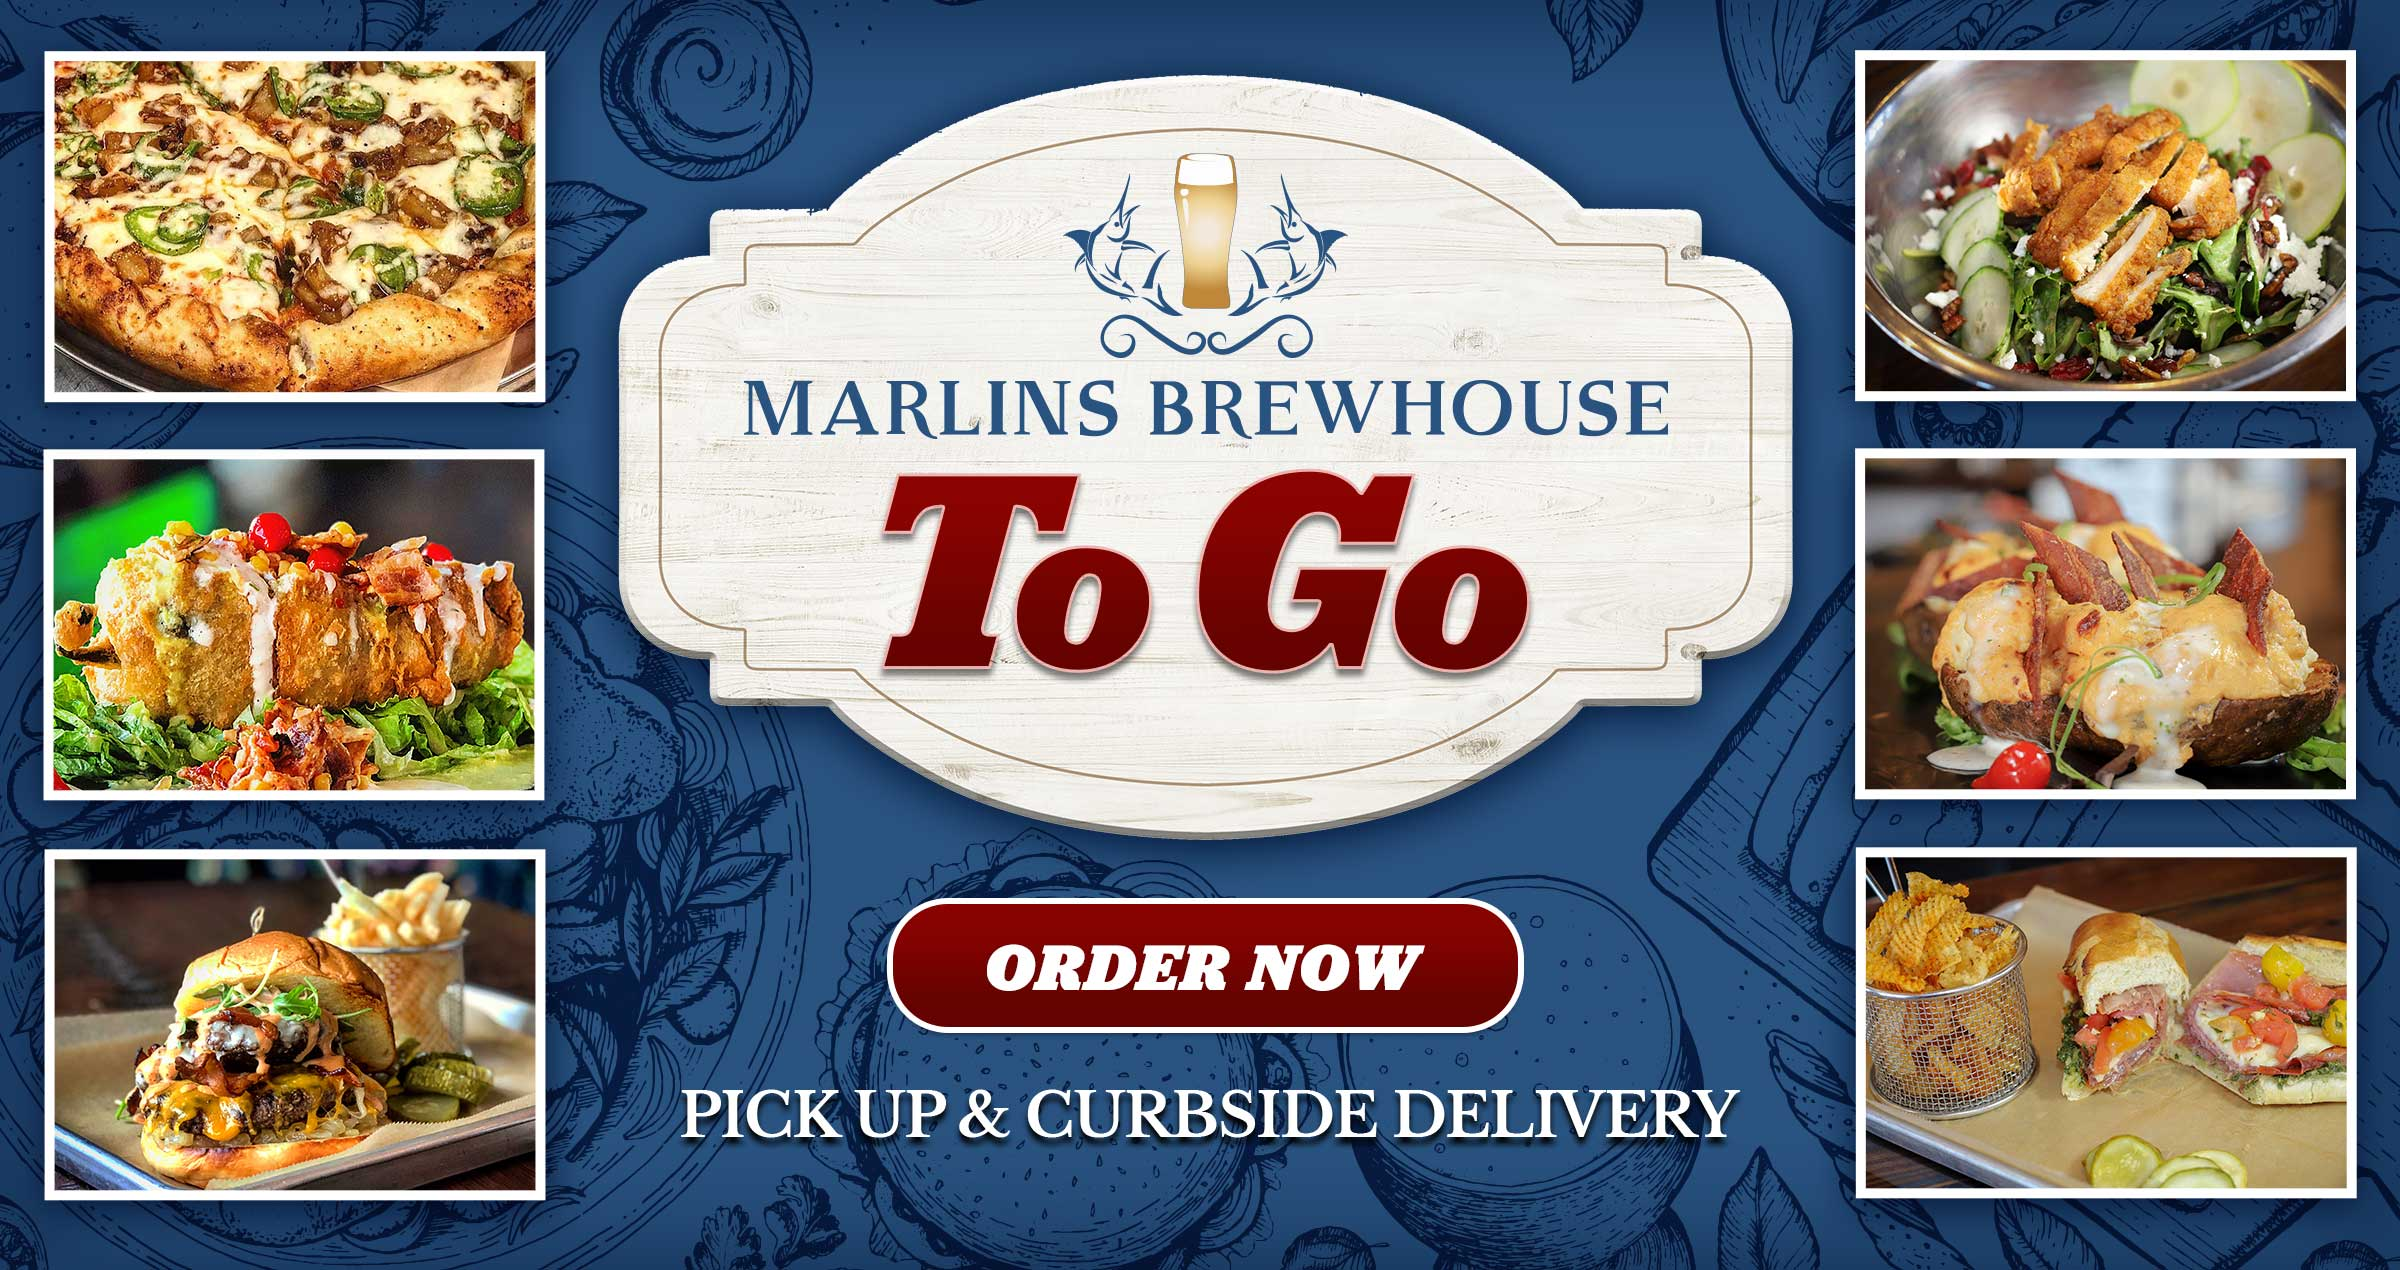 Marlins Brewhouse To Go - Order Now - Pick Up and Curbside Delivery